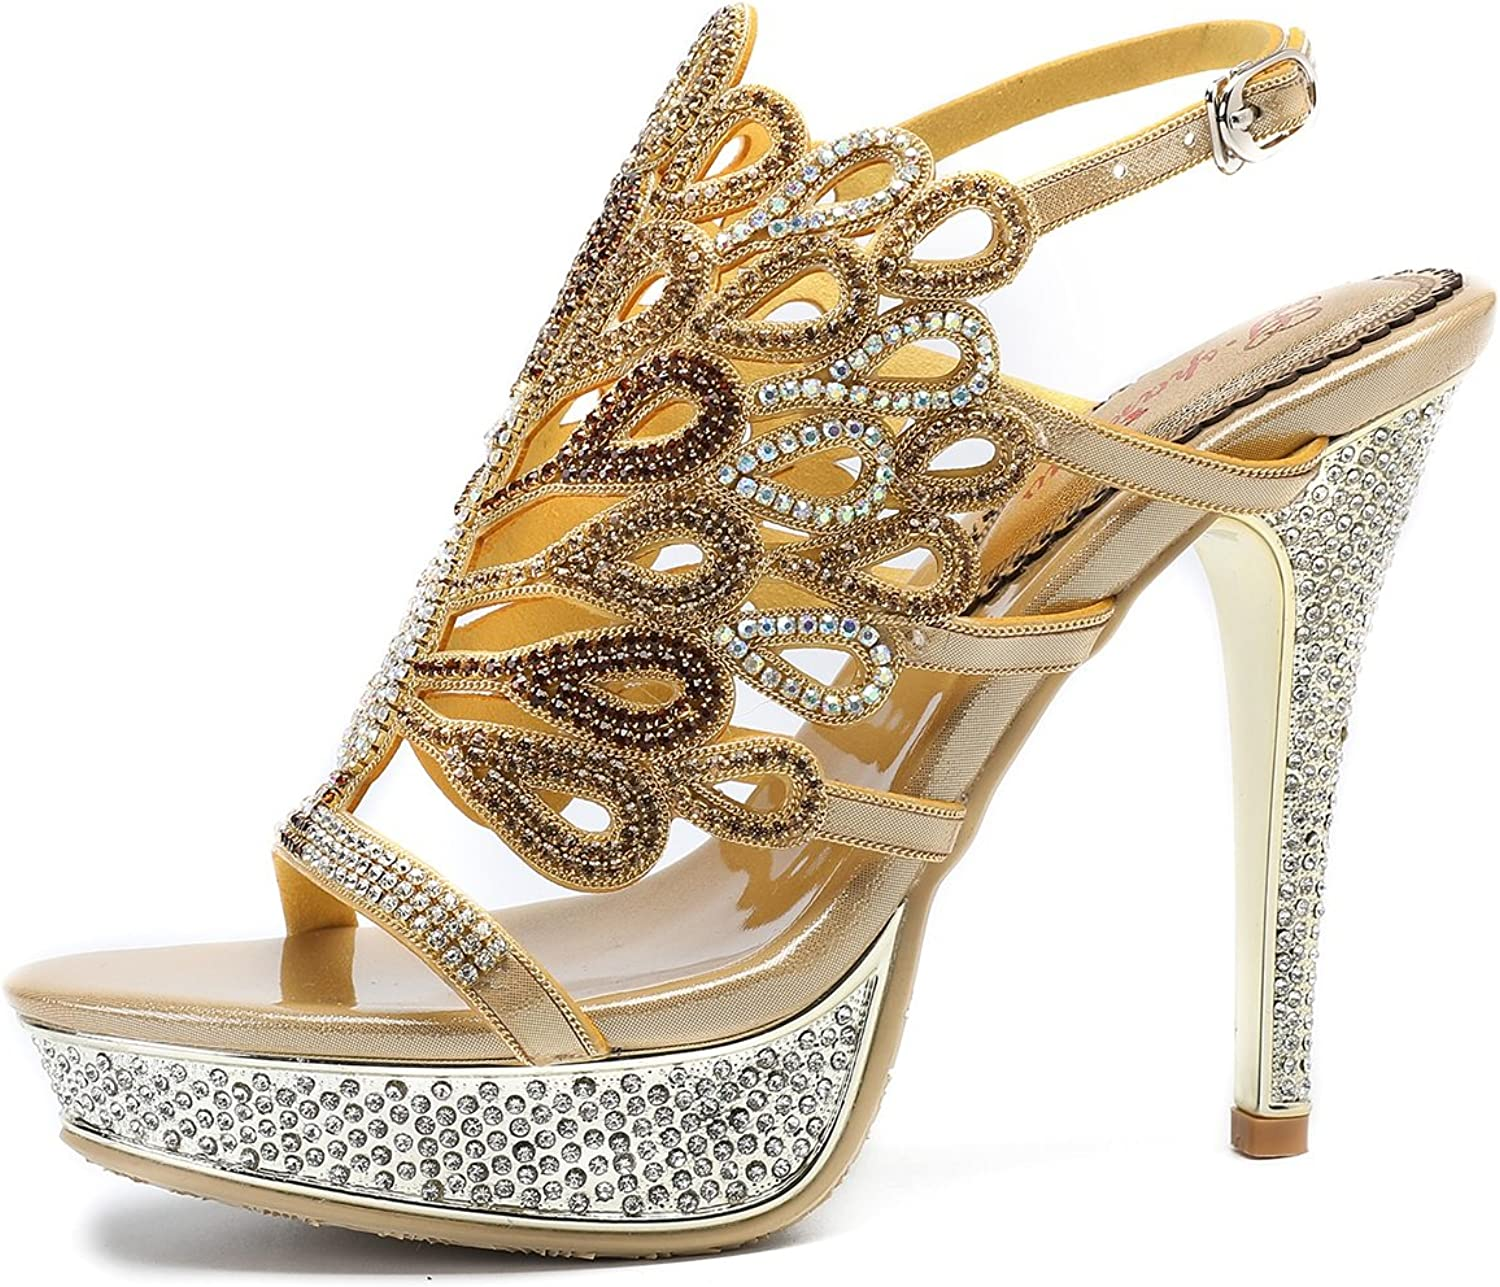 Women's shoes Sparkling Glitter Leather Summer Fall Comfort Sandals Stiletto Heel Peep Toe for Wedding Party & Evening gold